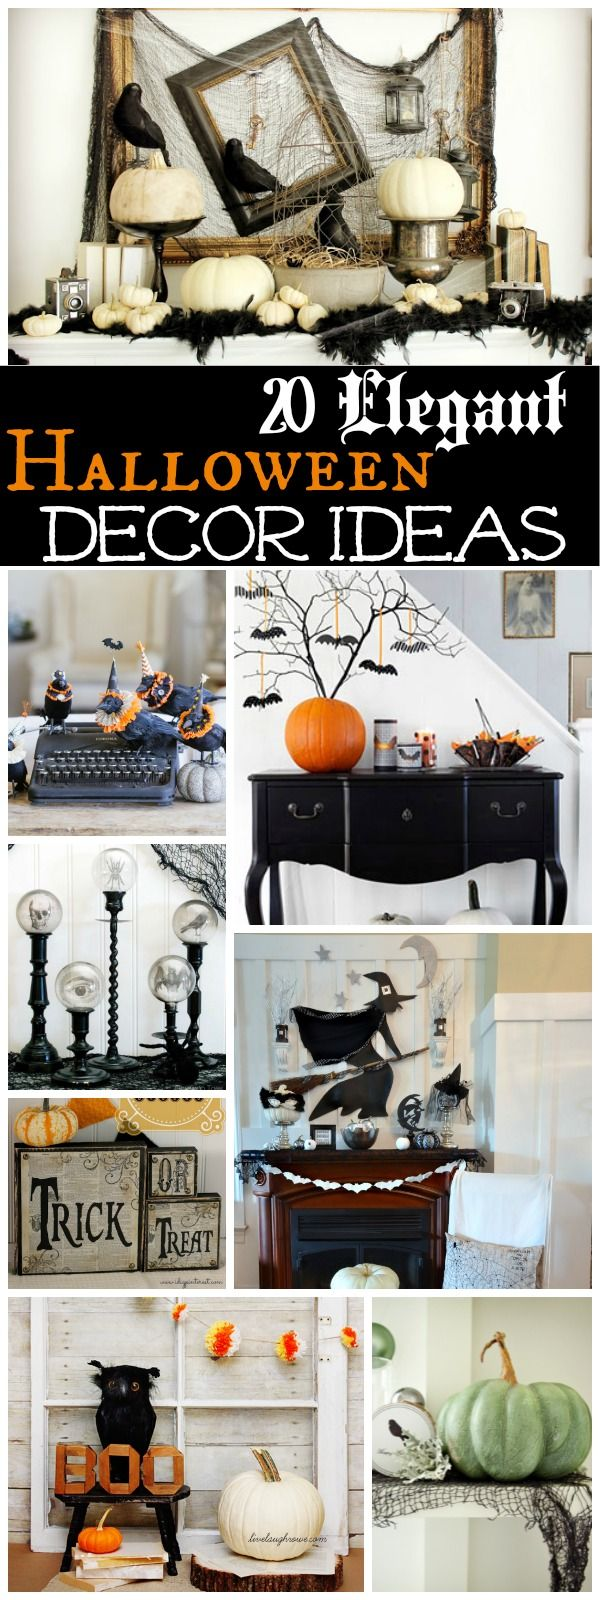 Elegant Halloween Decor Ideas at The Happy Housie